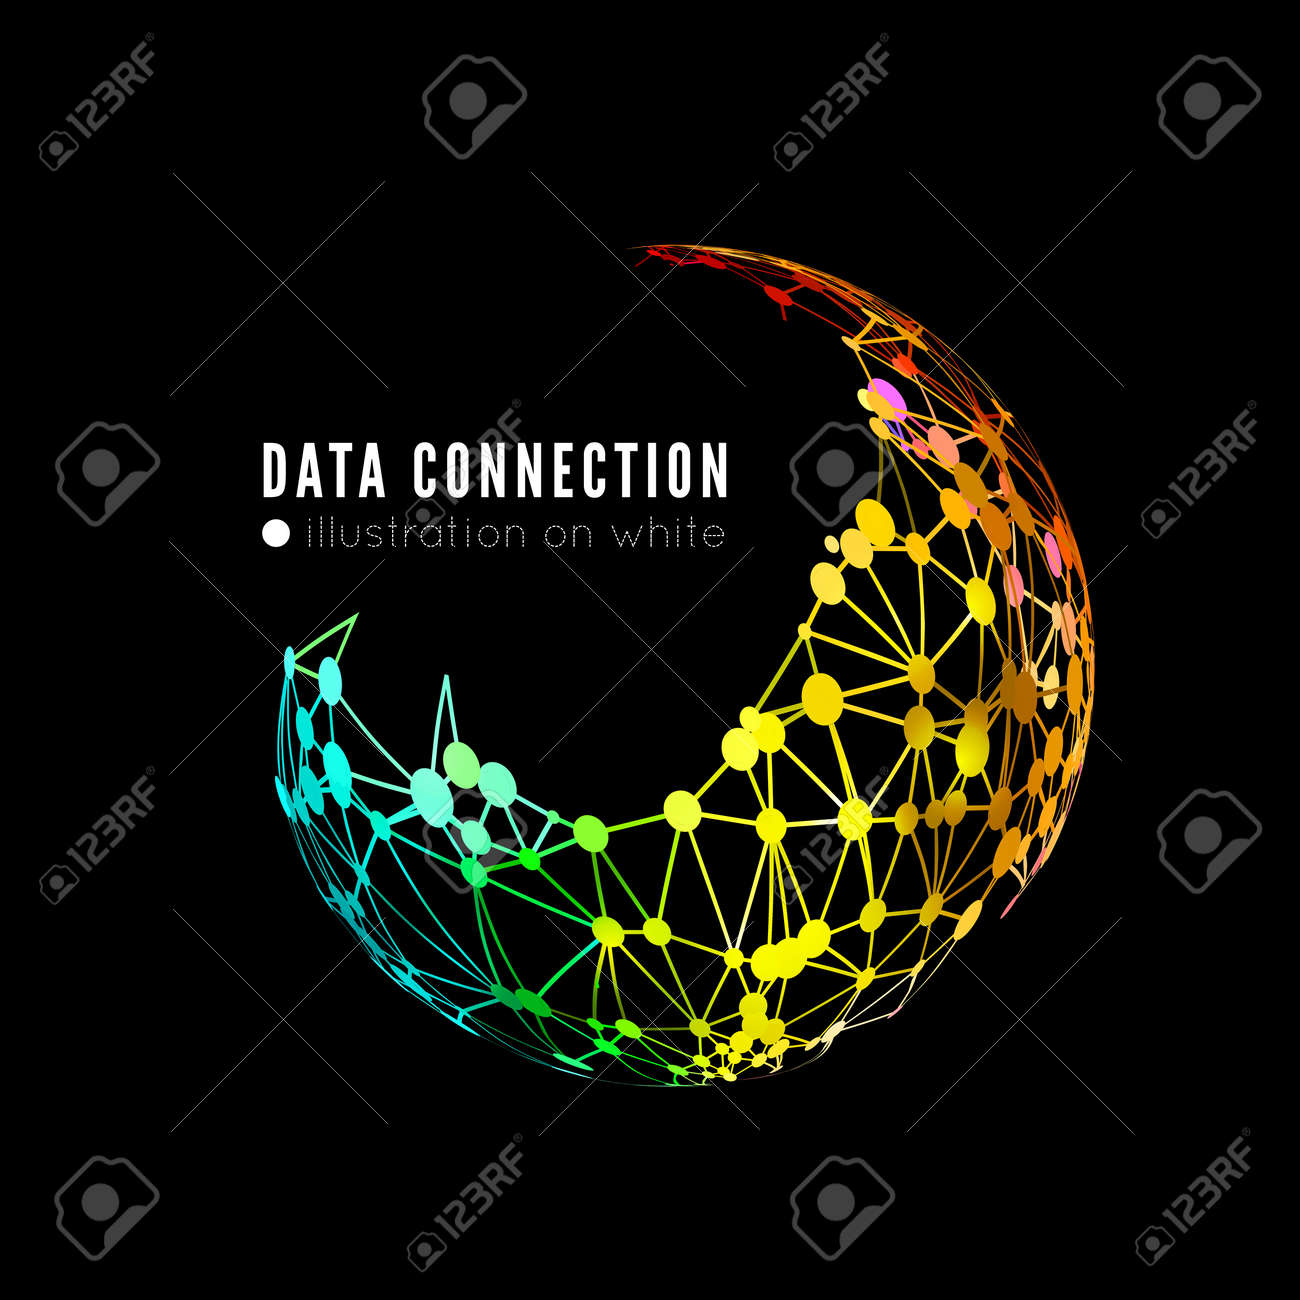 Abstract network connection background - 35282564